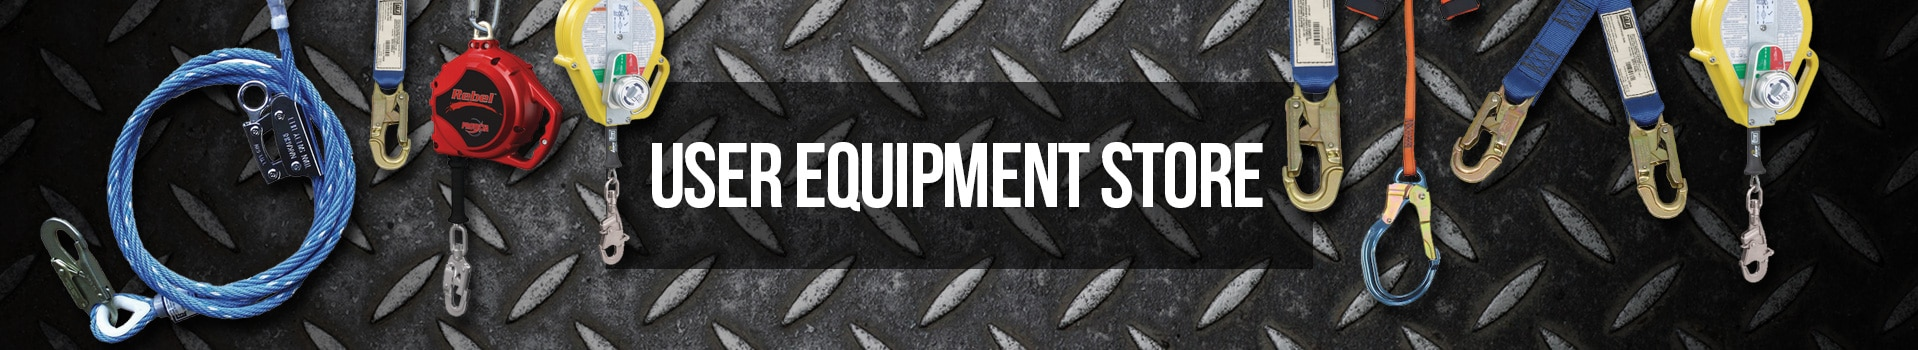 fall protection user equipment store